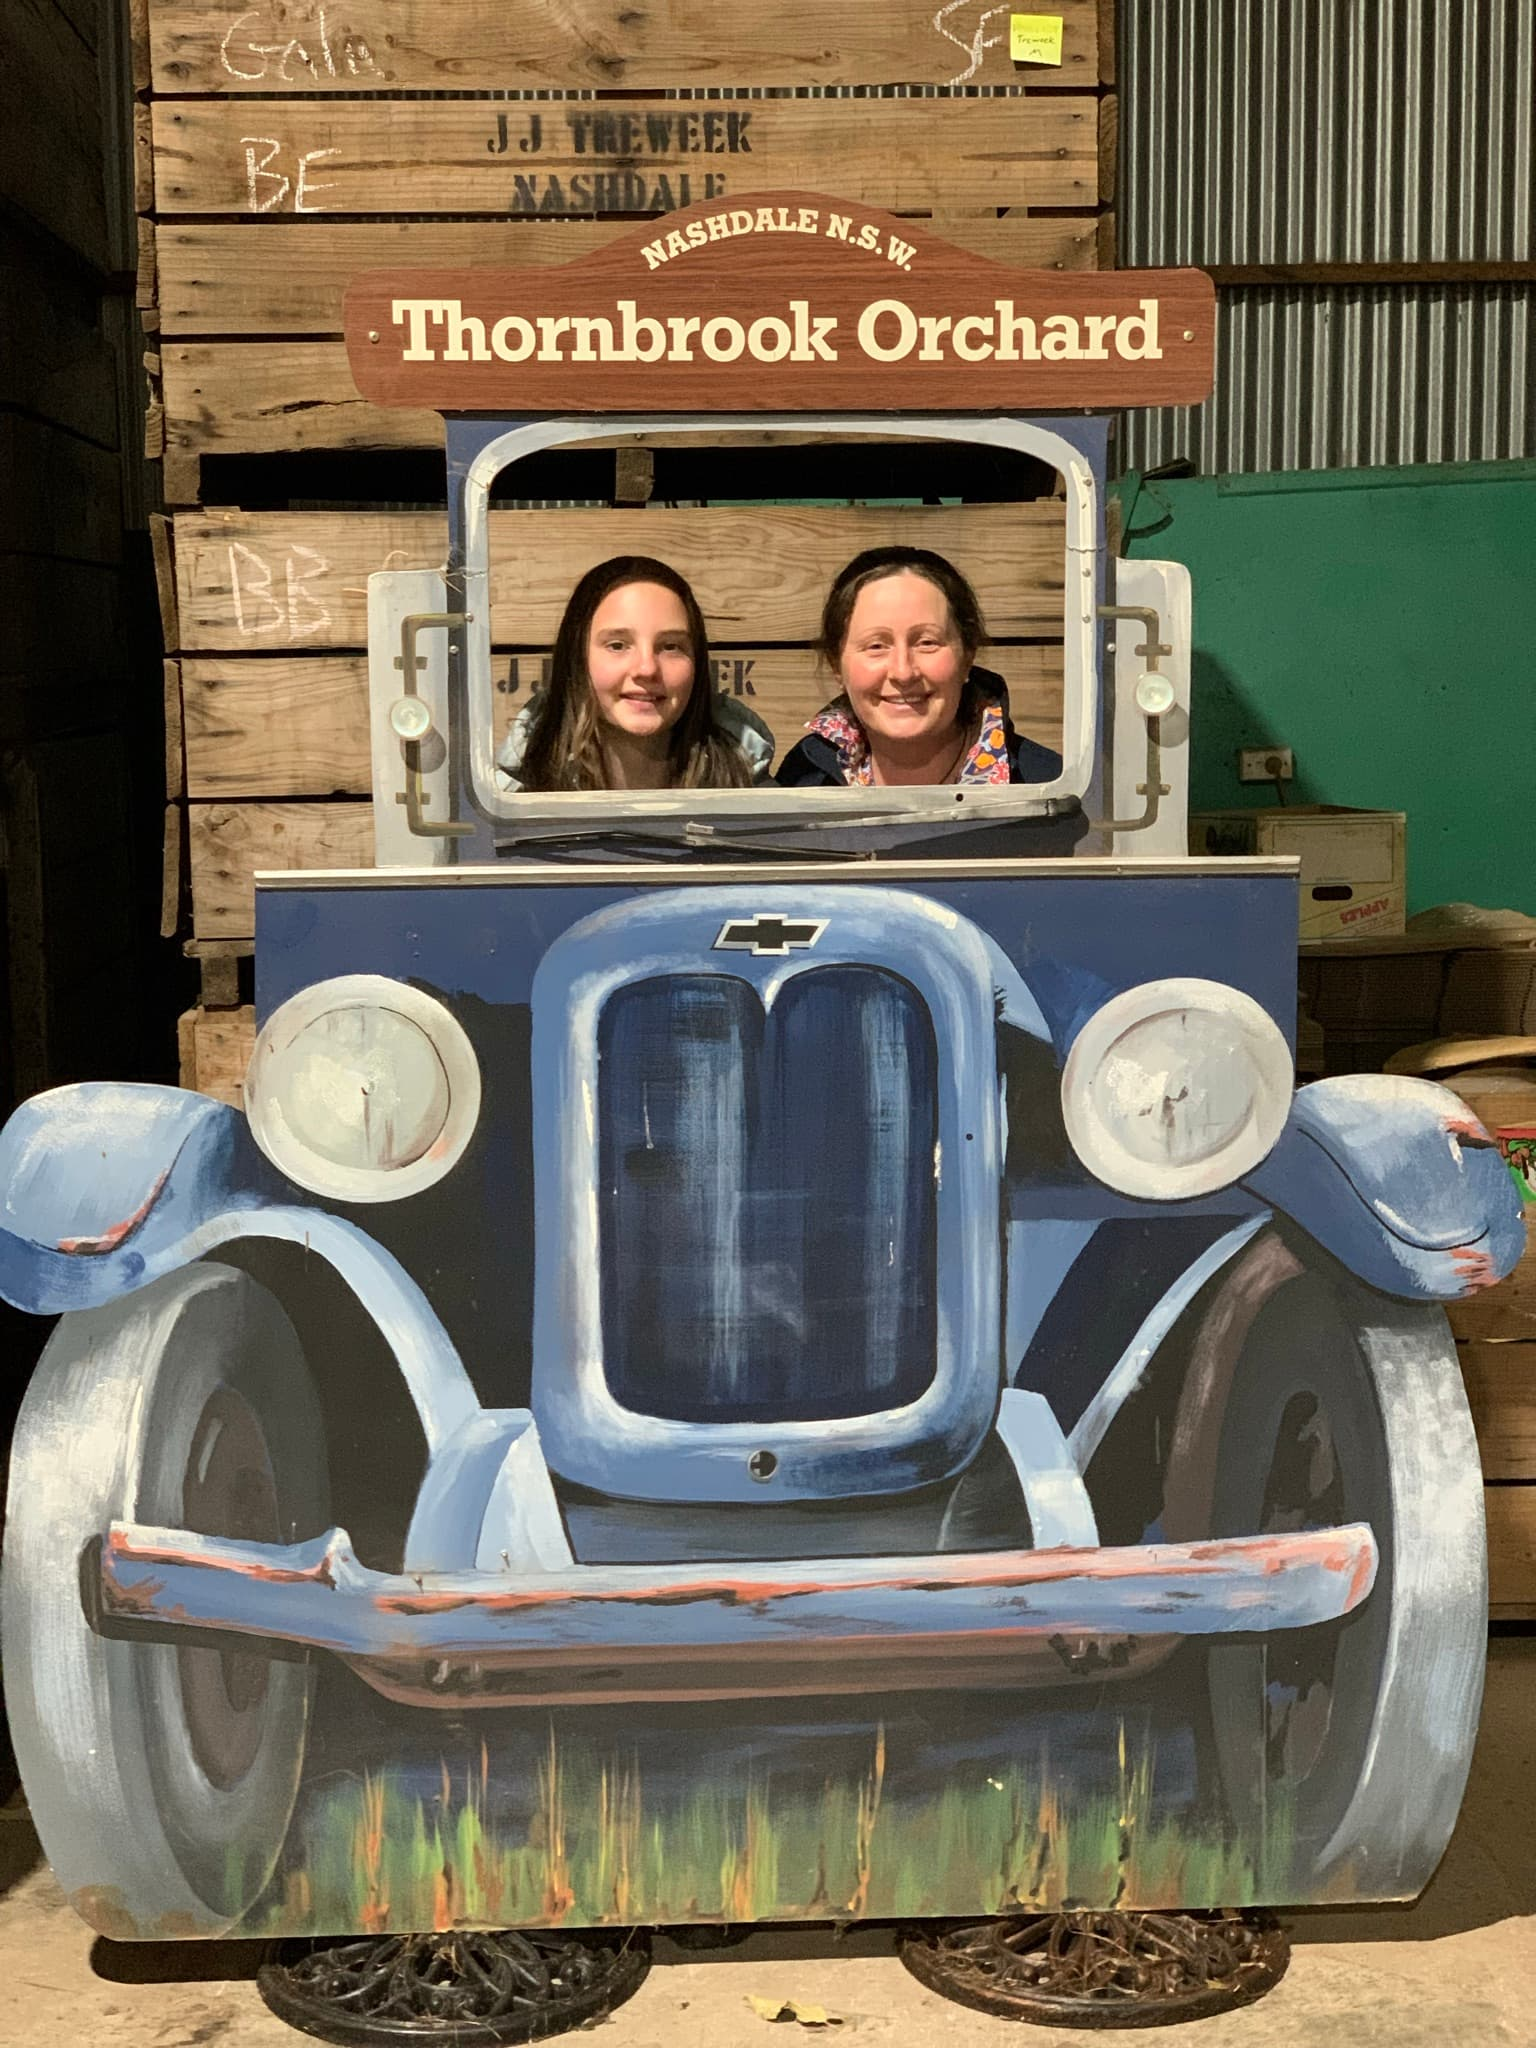 mother and daughter in car frame photo booth